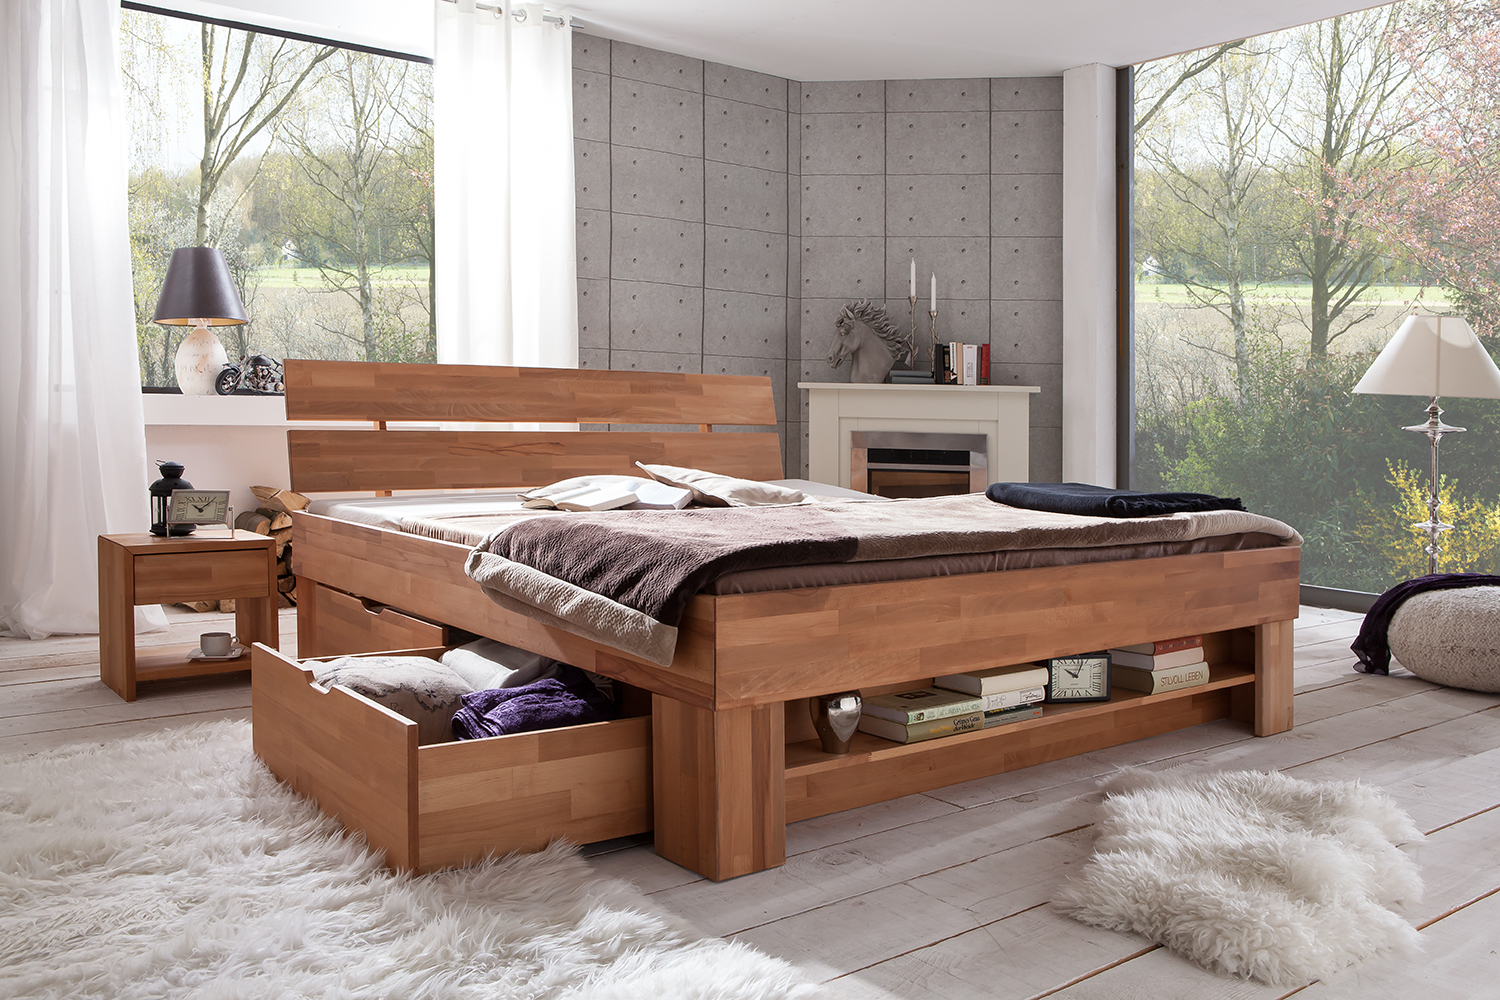 futonbett kernbuche massiv ge lt mit bettkasten sofie elfo m bel. Black Bedroom Furniture Sets. Home Design Ideas